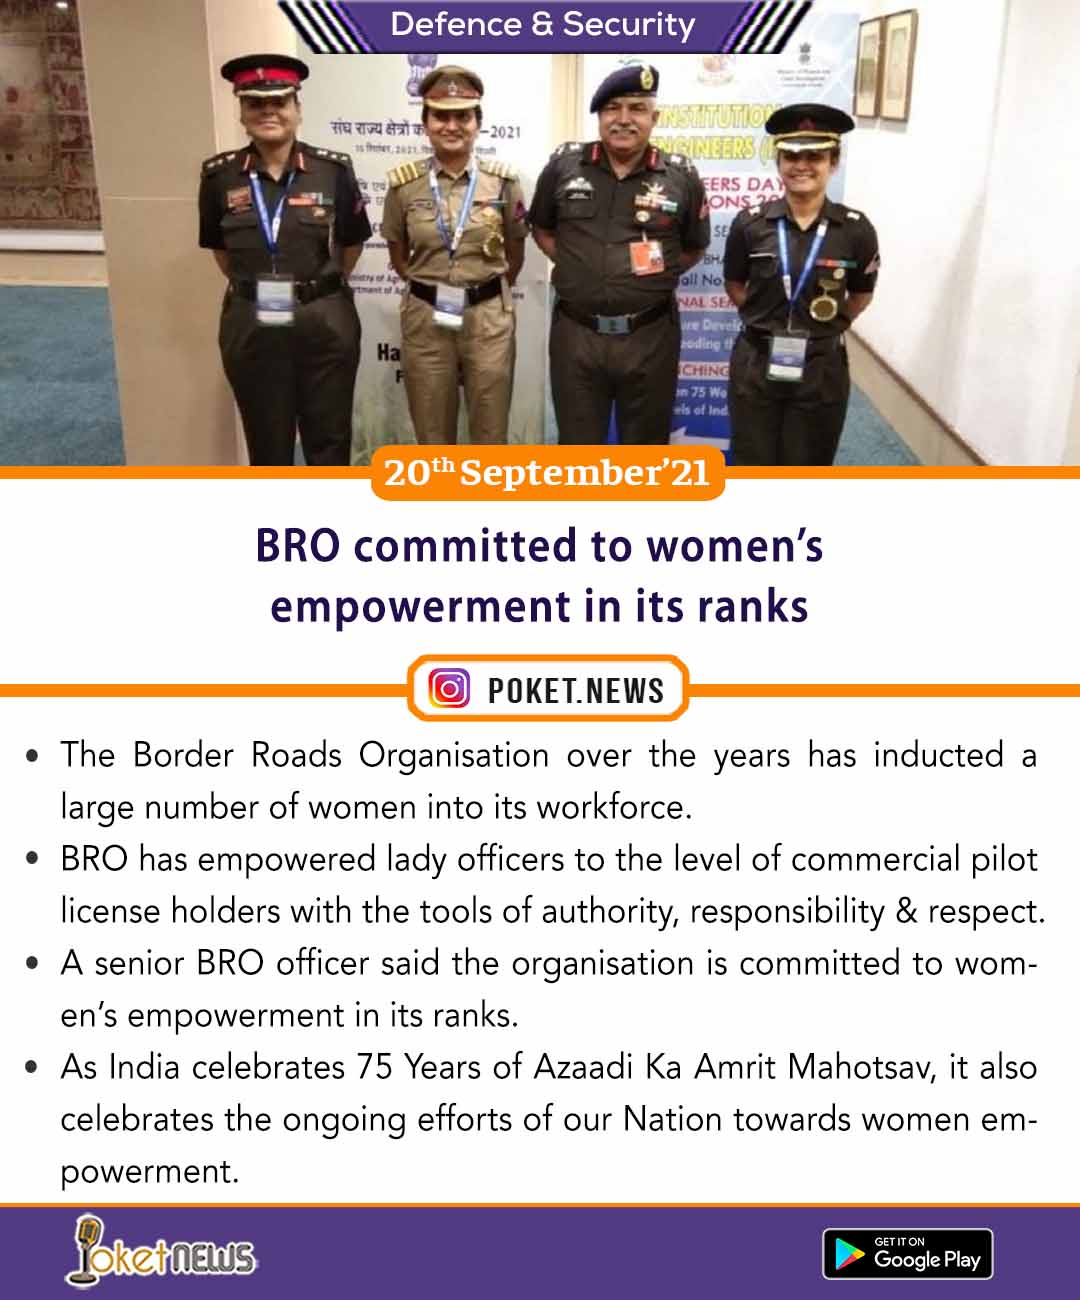 BRO committed to women's empowerment in its ranks